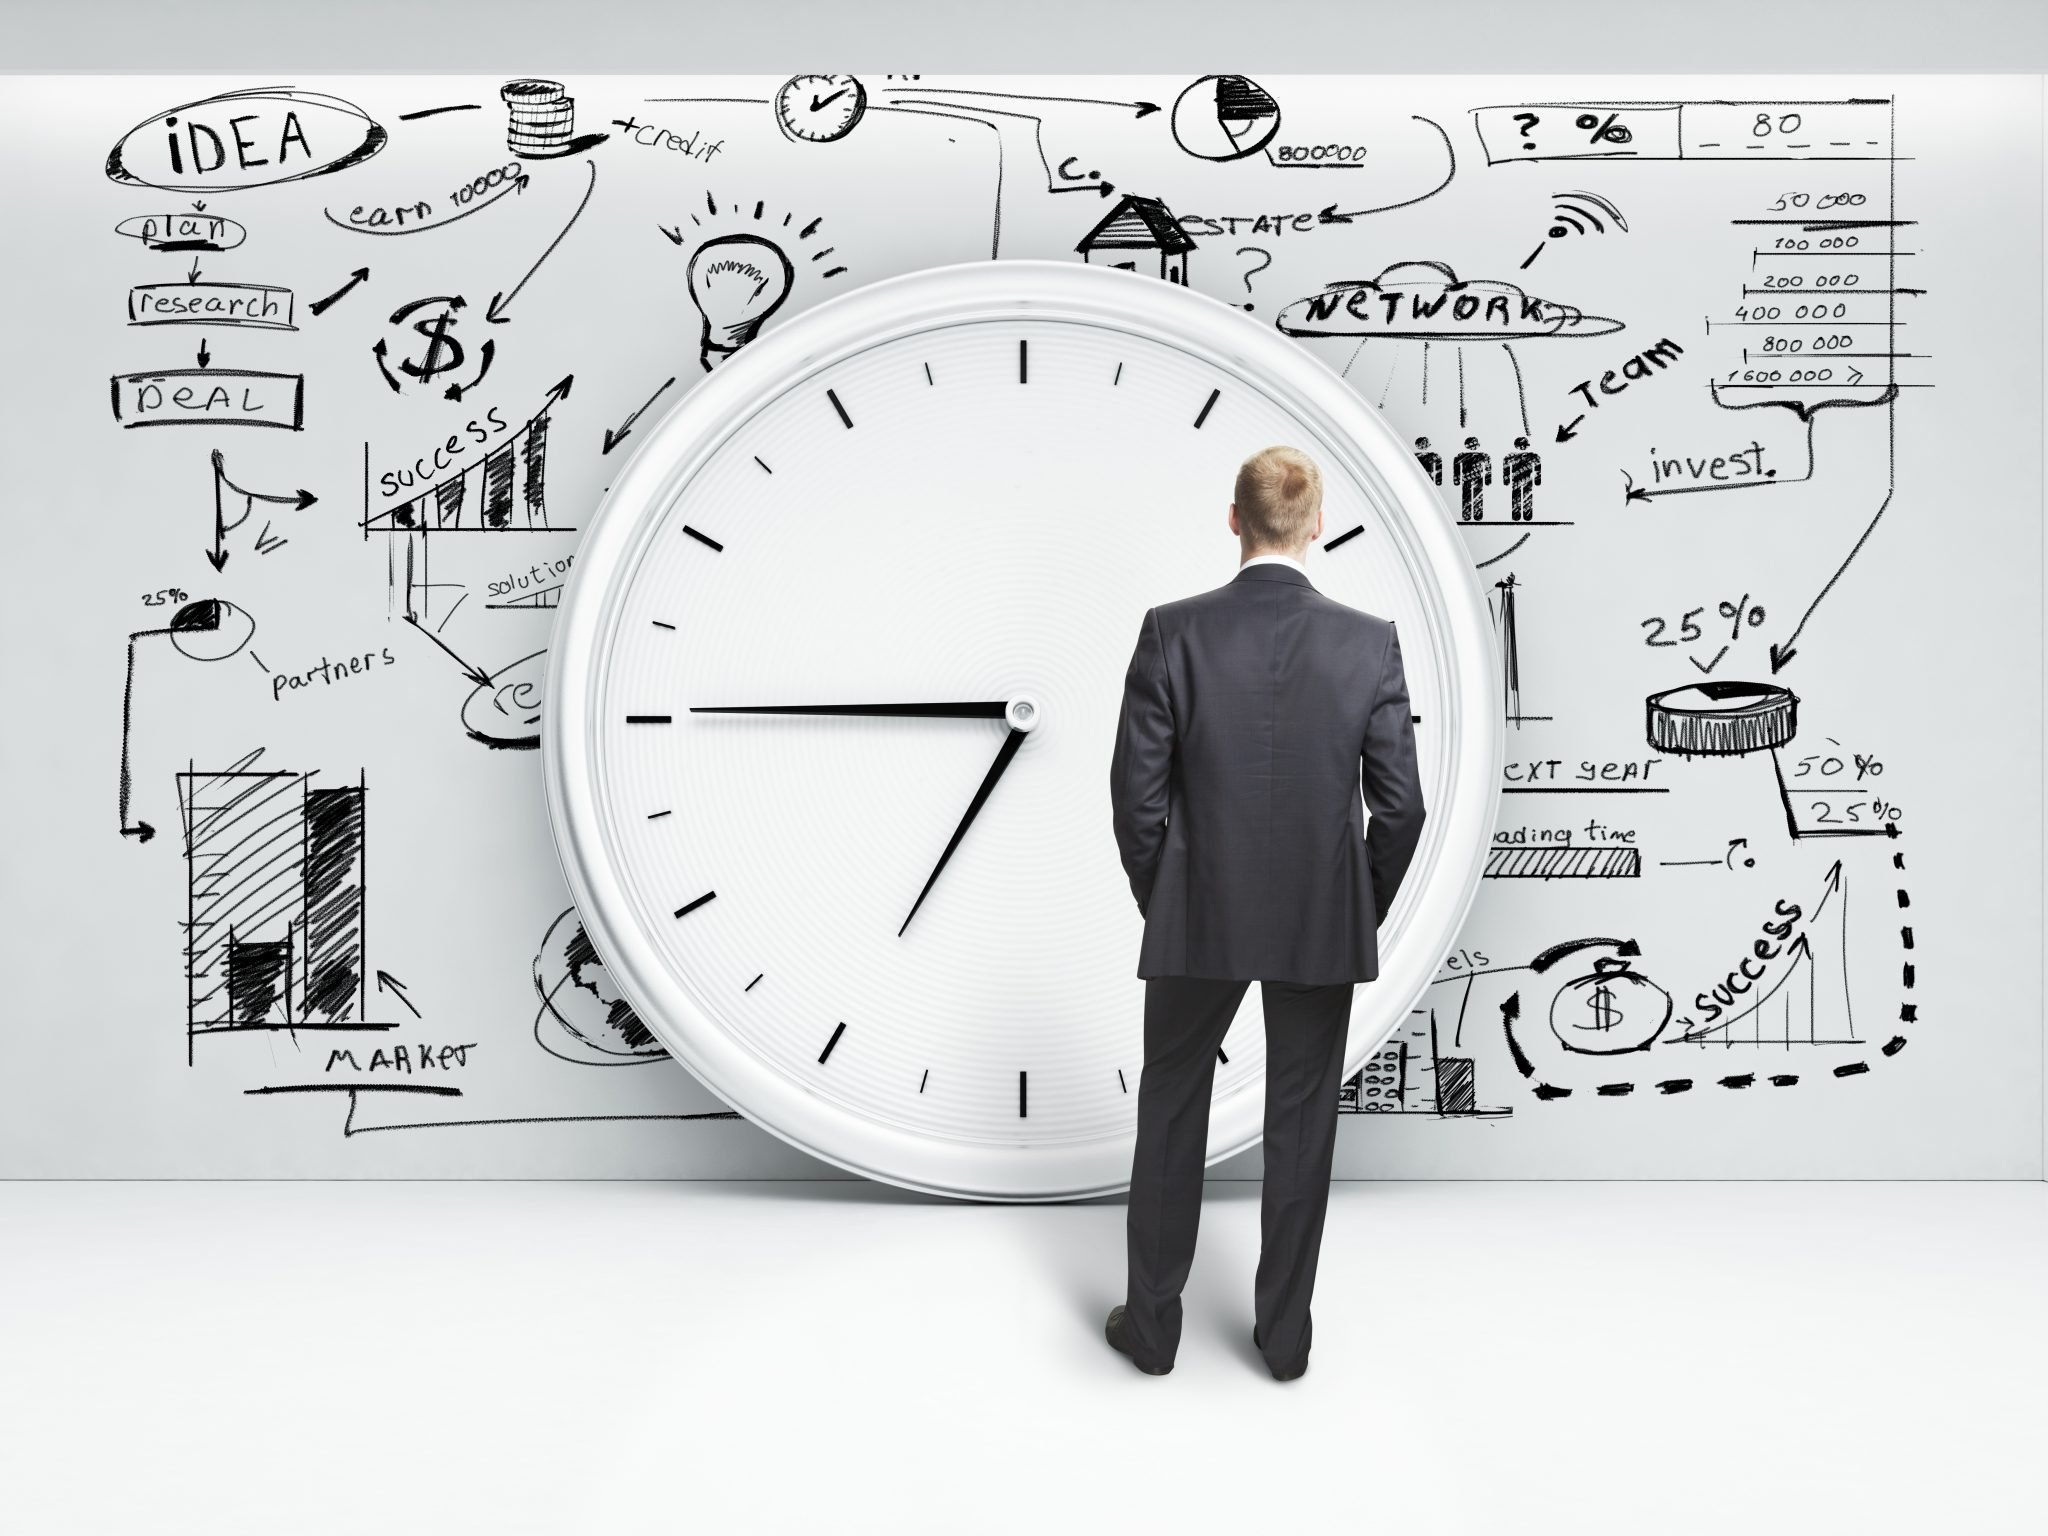 5 considerations to make you see why SEO takes time